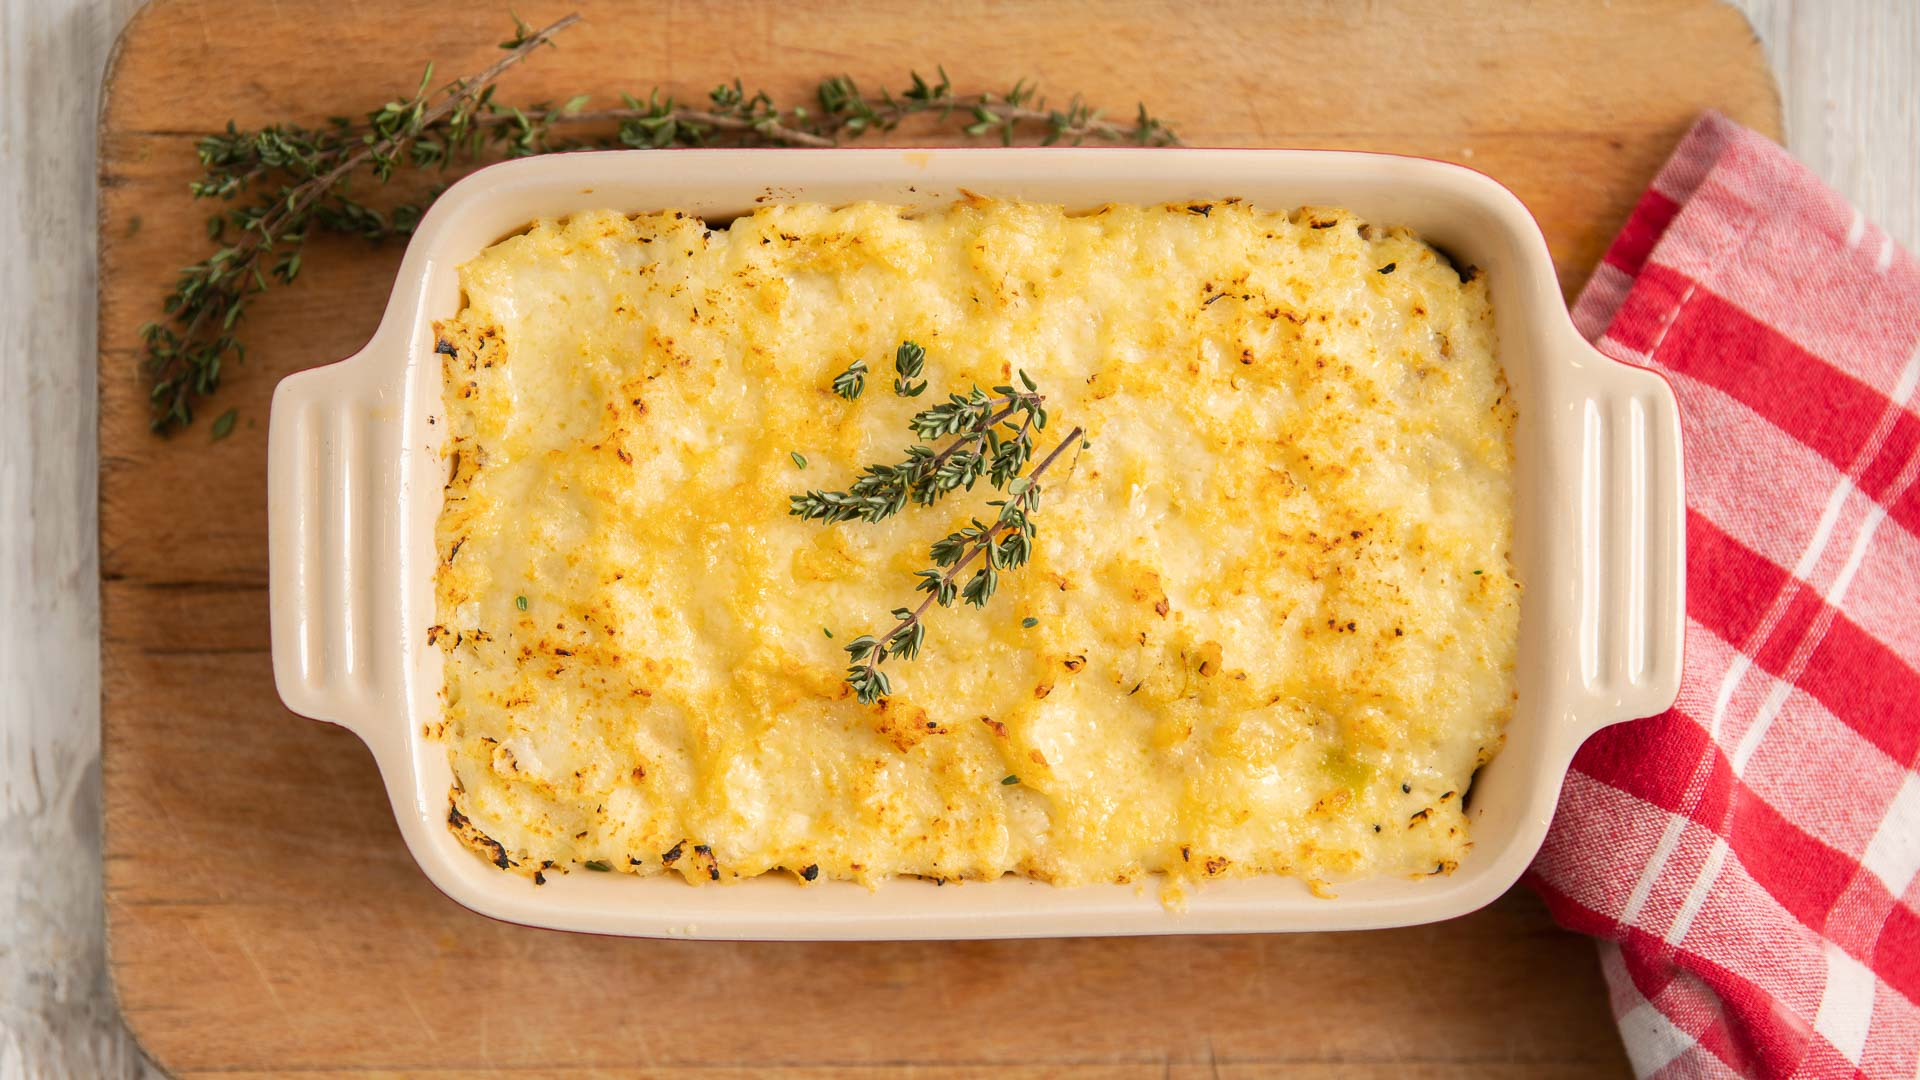 baking dish with shepherds pie cooked